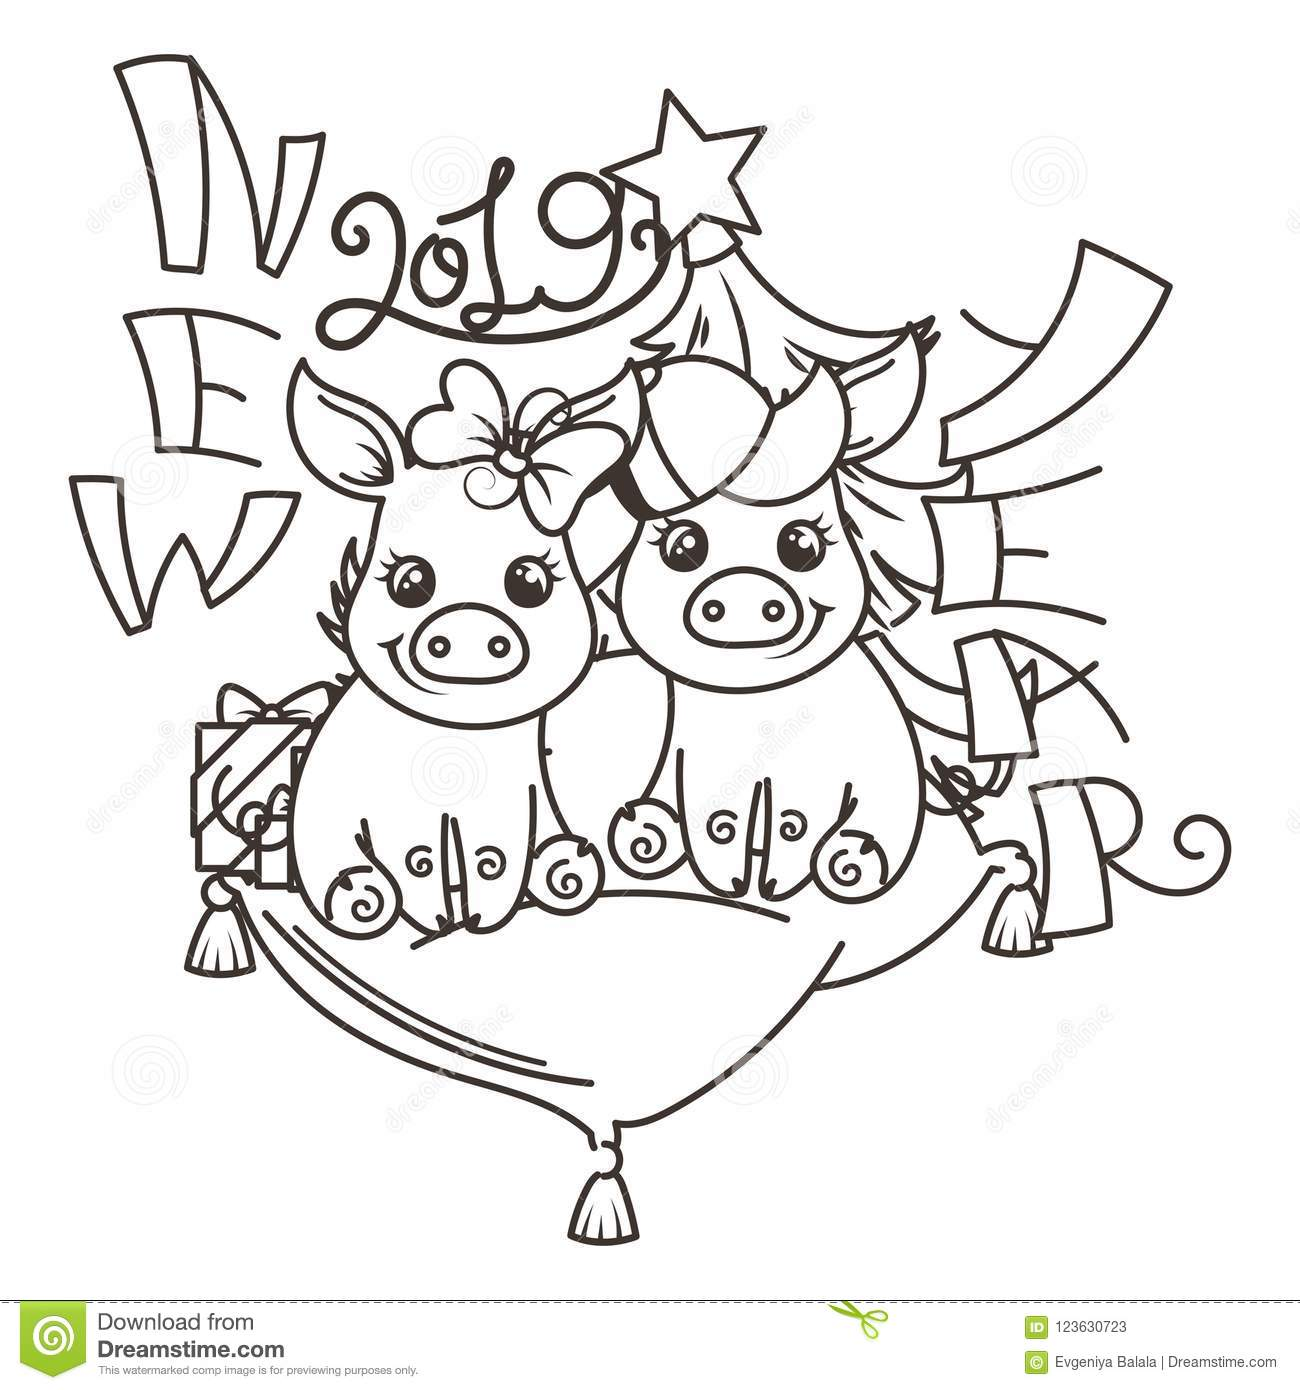 Happy new 2019 year card with cartoon baby pig small vector symbol of holiday coloring page